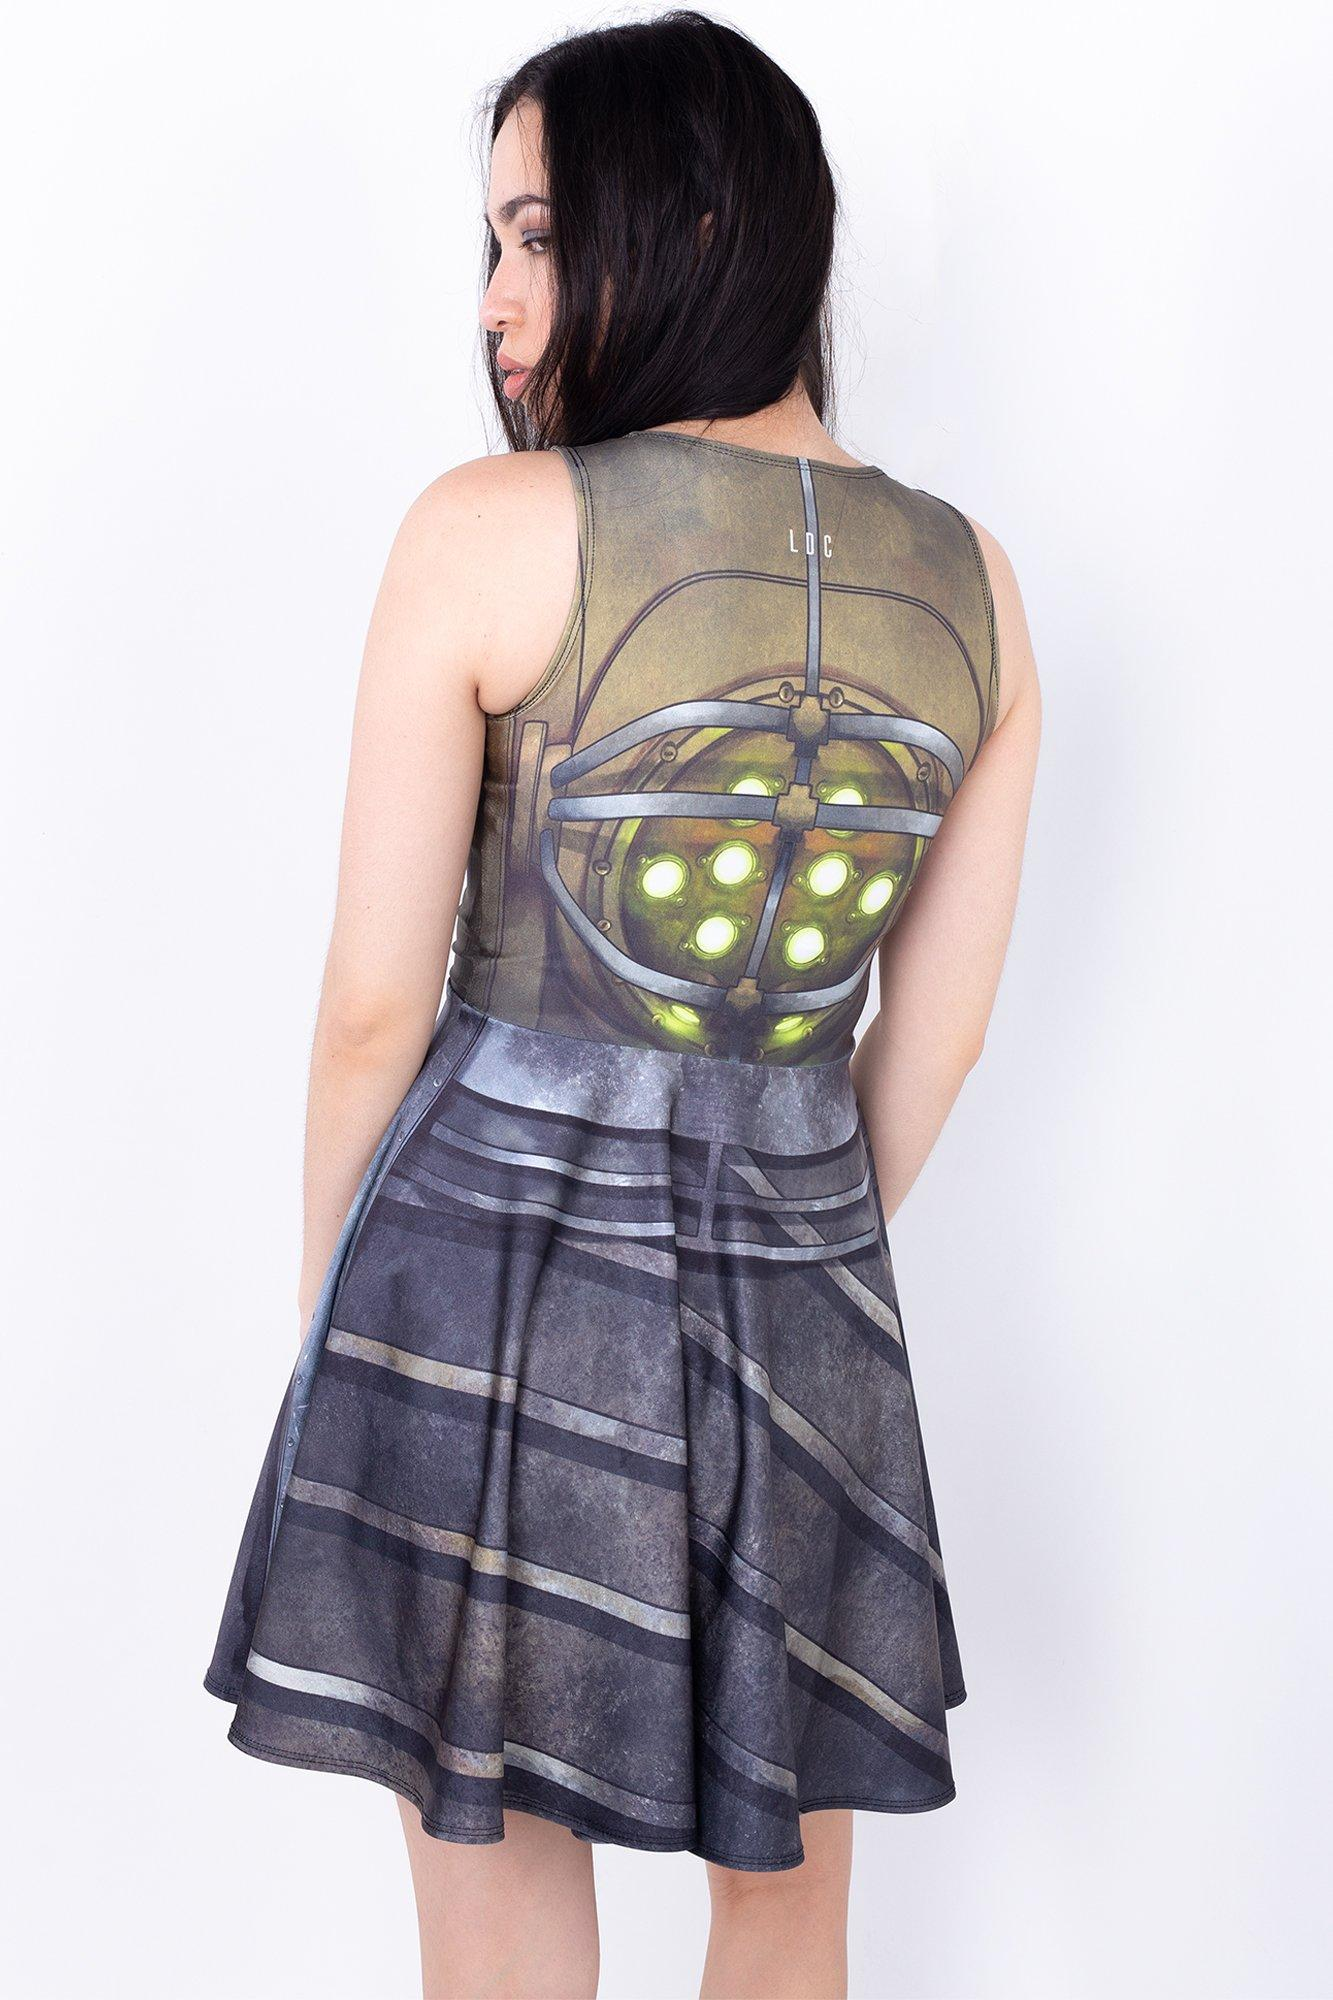 Big Daddy Cosplay Vogue Dress